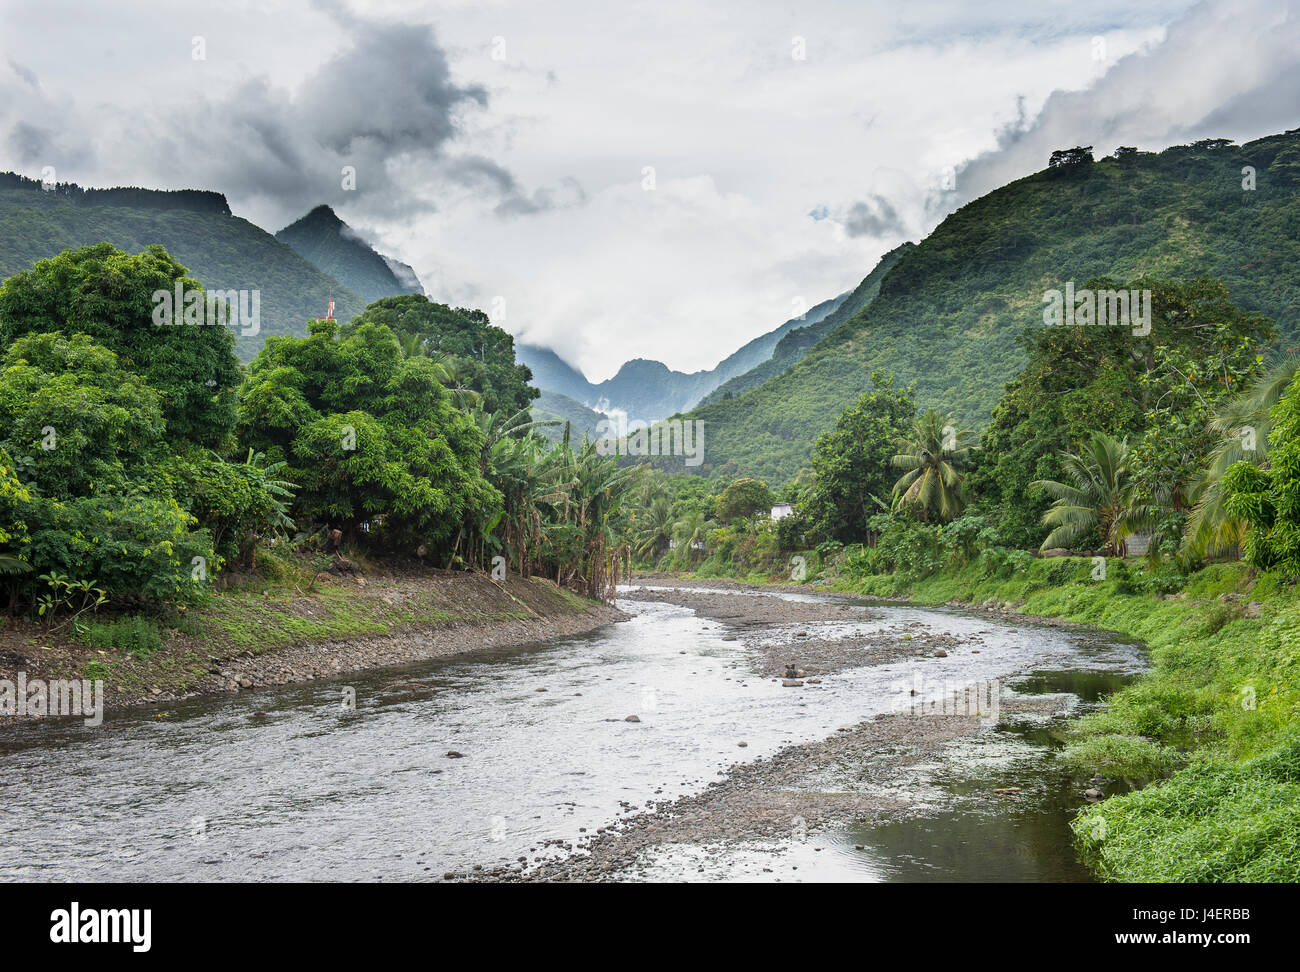 Paea River with dramatic mountains in the background, Tahiti, Society Islands, French Polynesia, Pacific - Stock Image